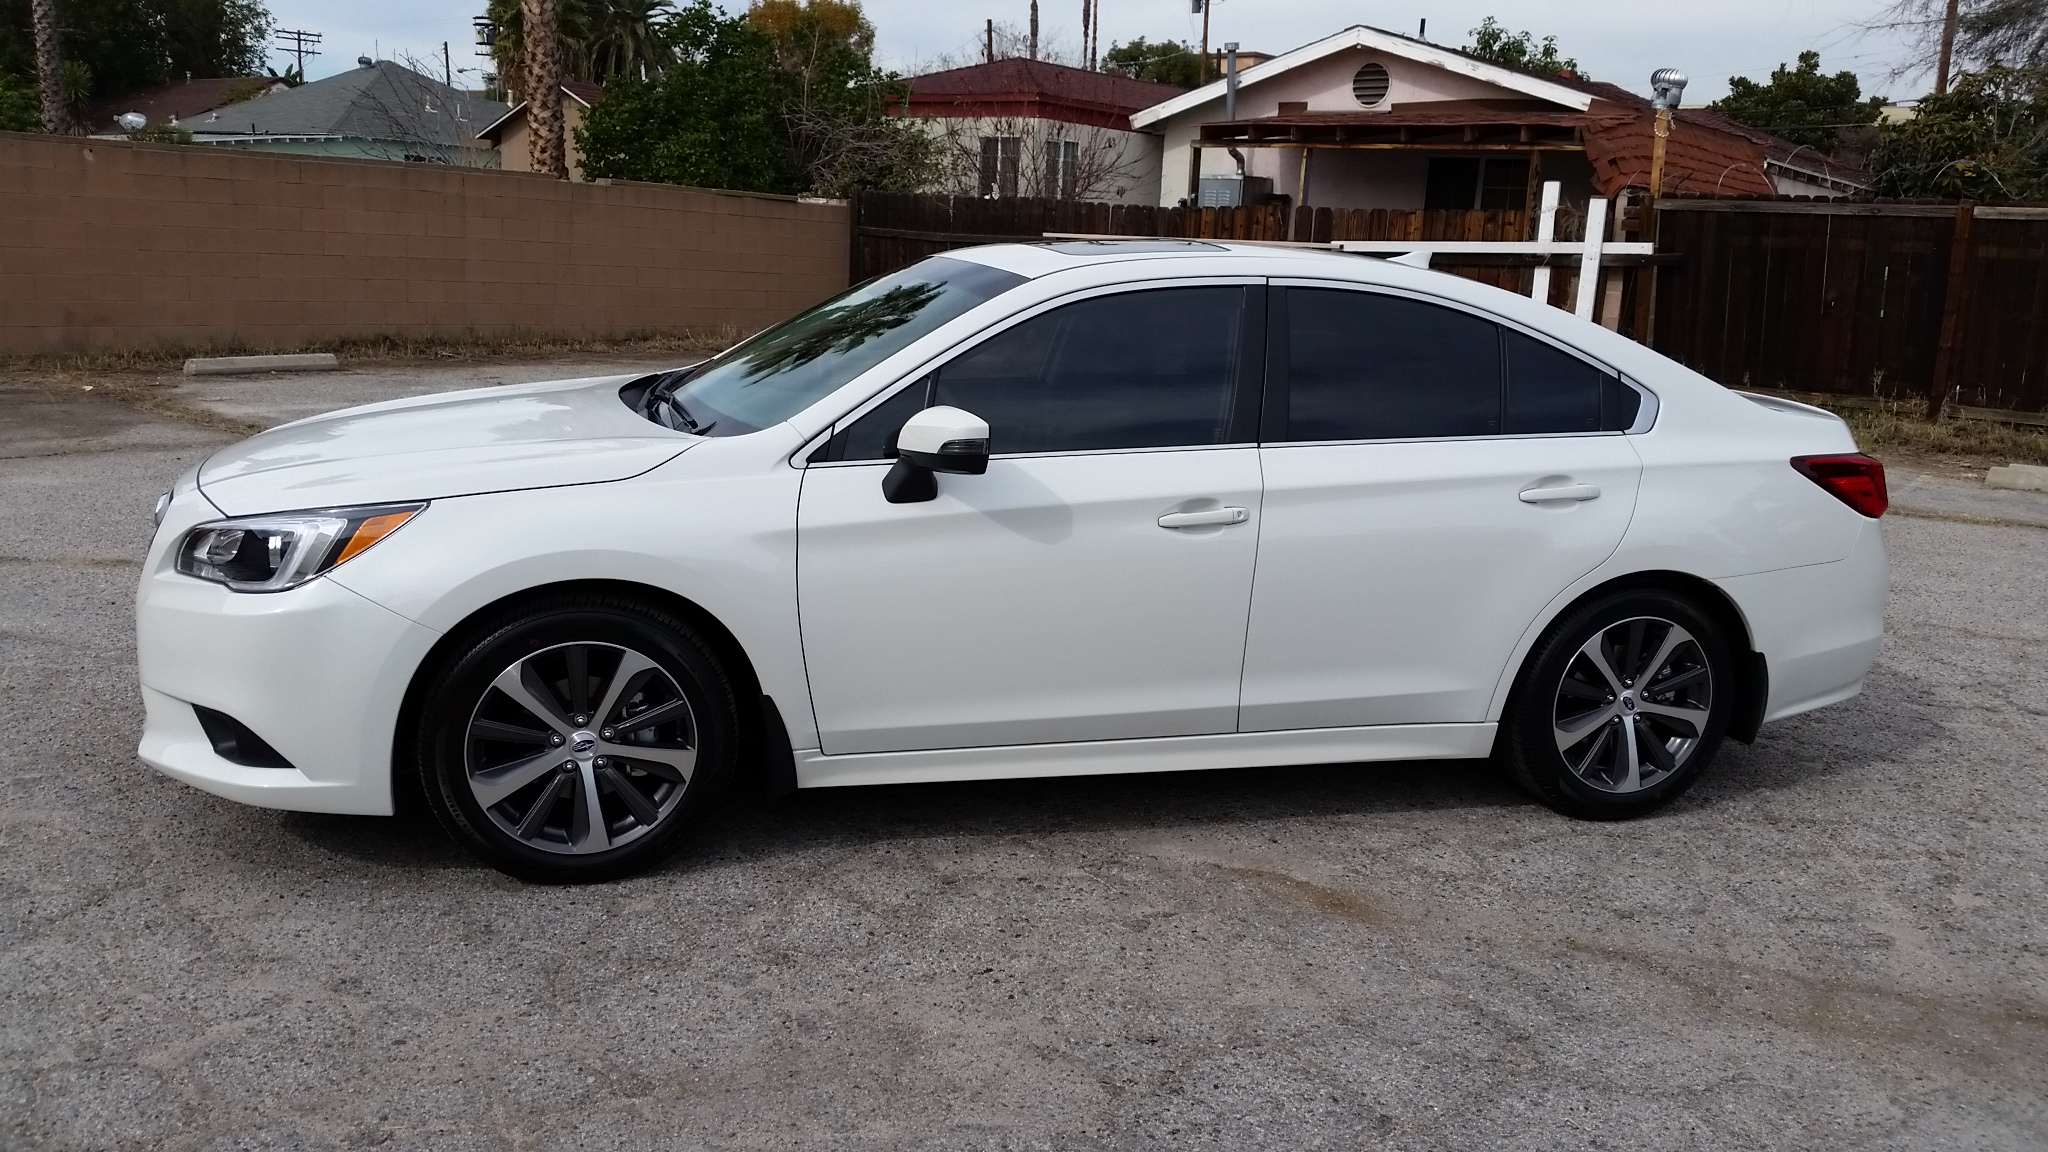 Average Cost Of Window Tinting >> Jj Window Tinting Car Window Tinting Best Price Special Near La